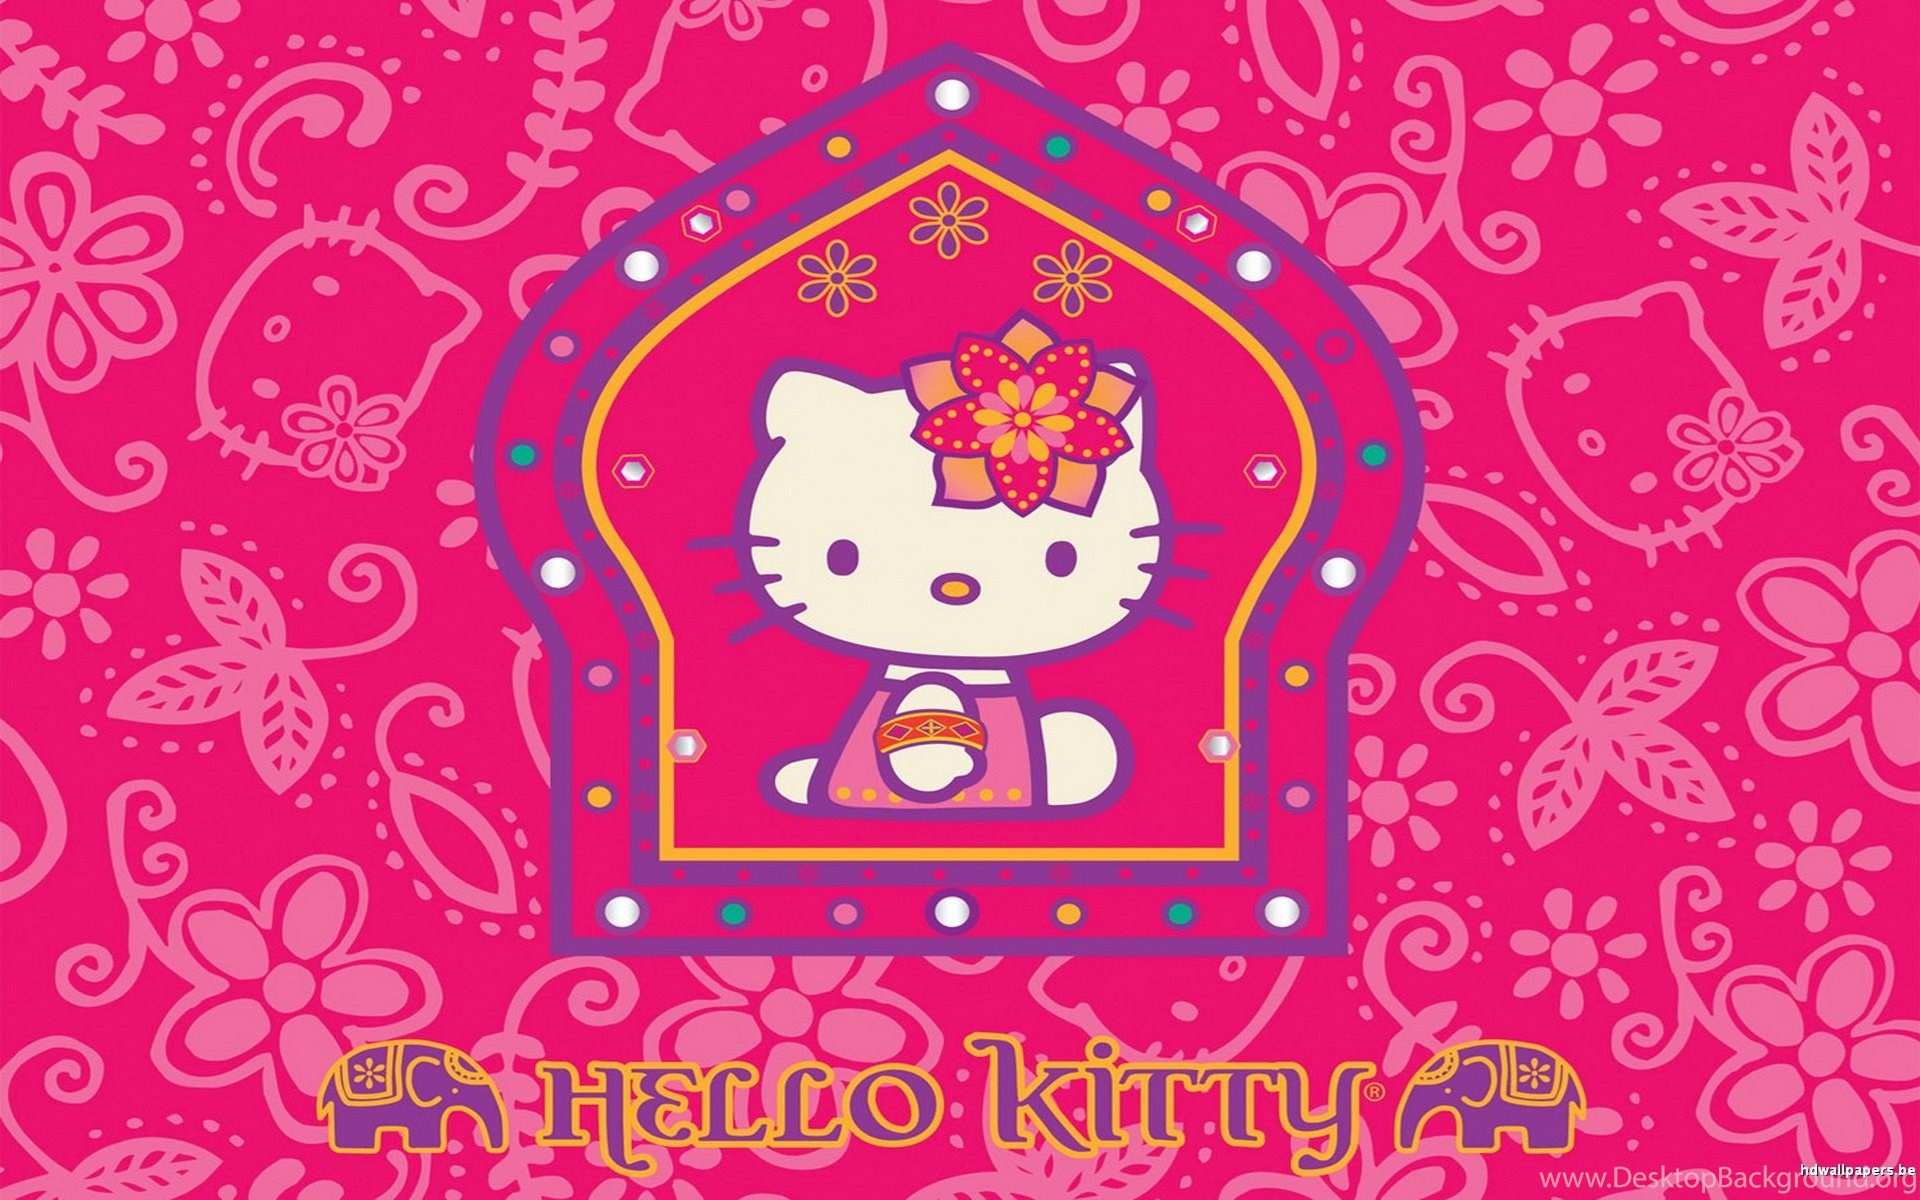 Most Inspiring Wallpaper Hello Kitty Ipad Air - 824350_sanrio-hello-kitty-desktop-wallpaper-images_1920x1200_h  Pictures_667915.jpg